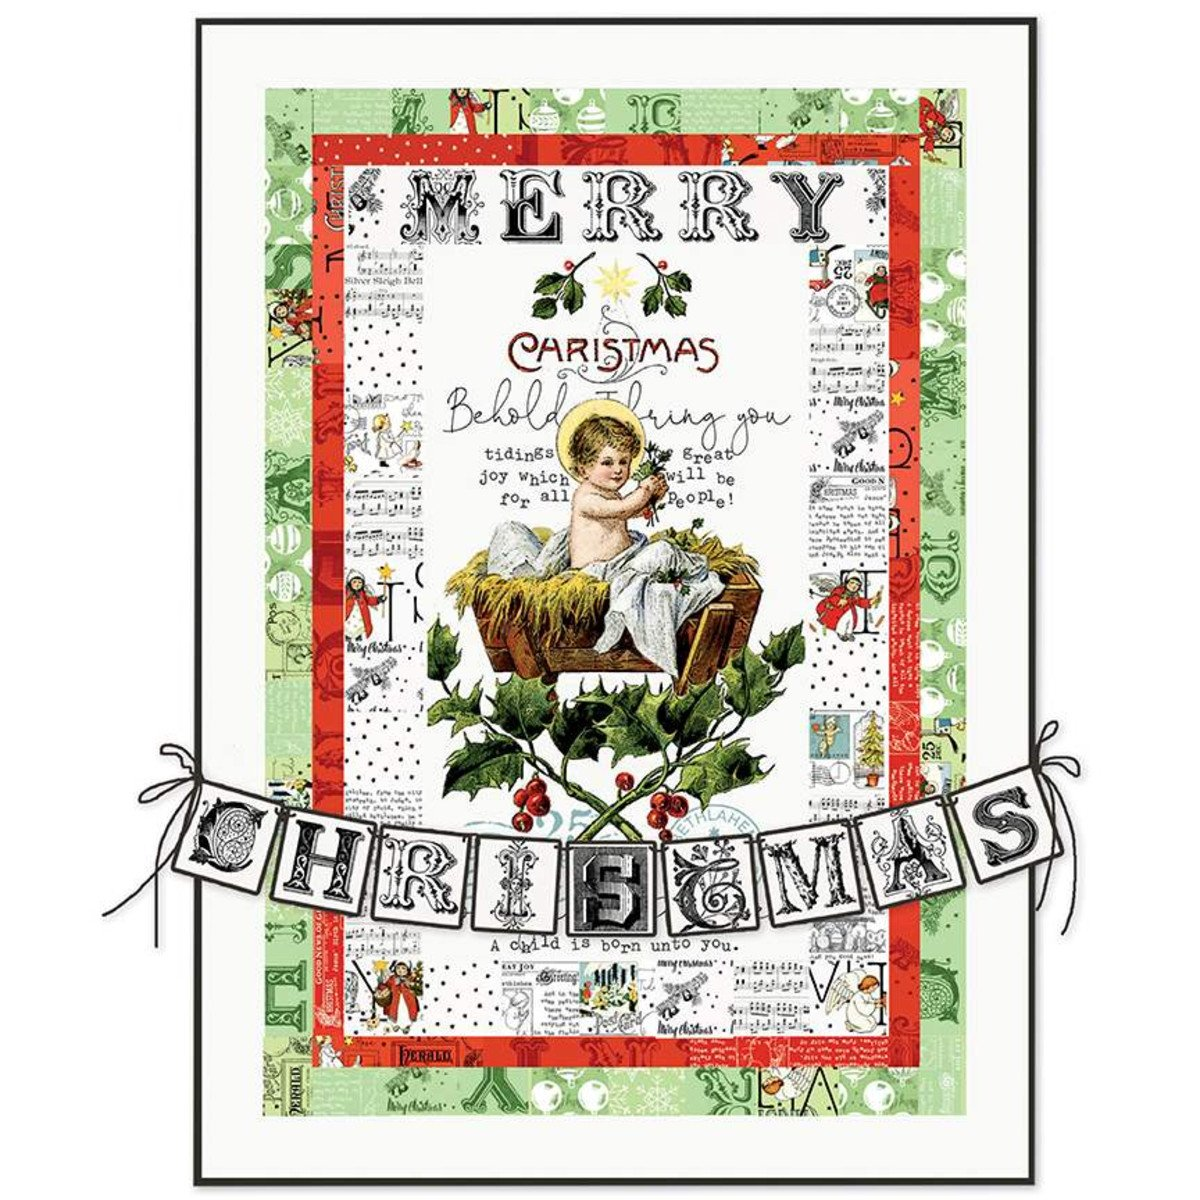 All About Christmas Tidings of Great Joy Panel Quilt Boxed Kit